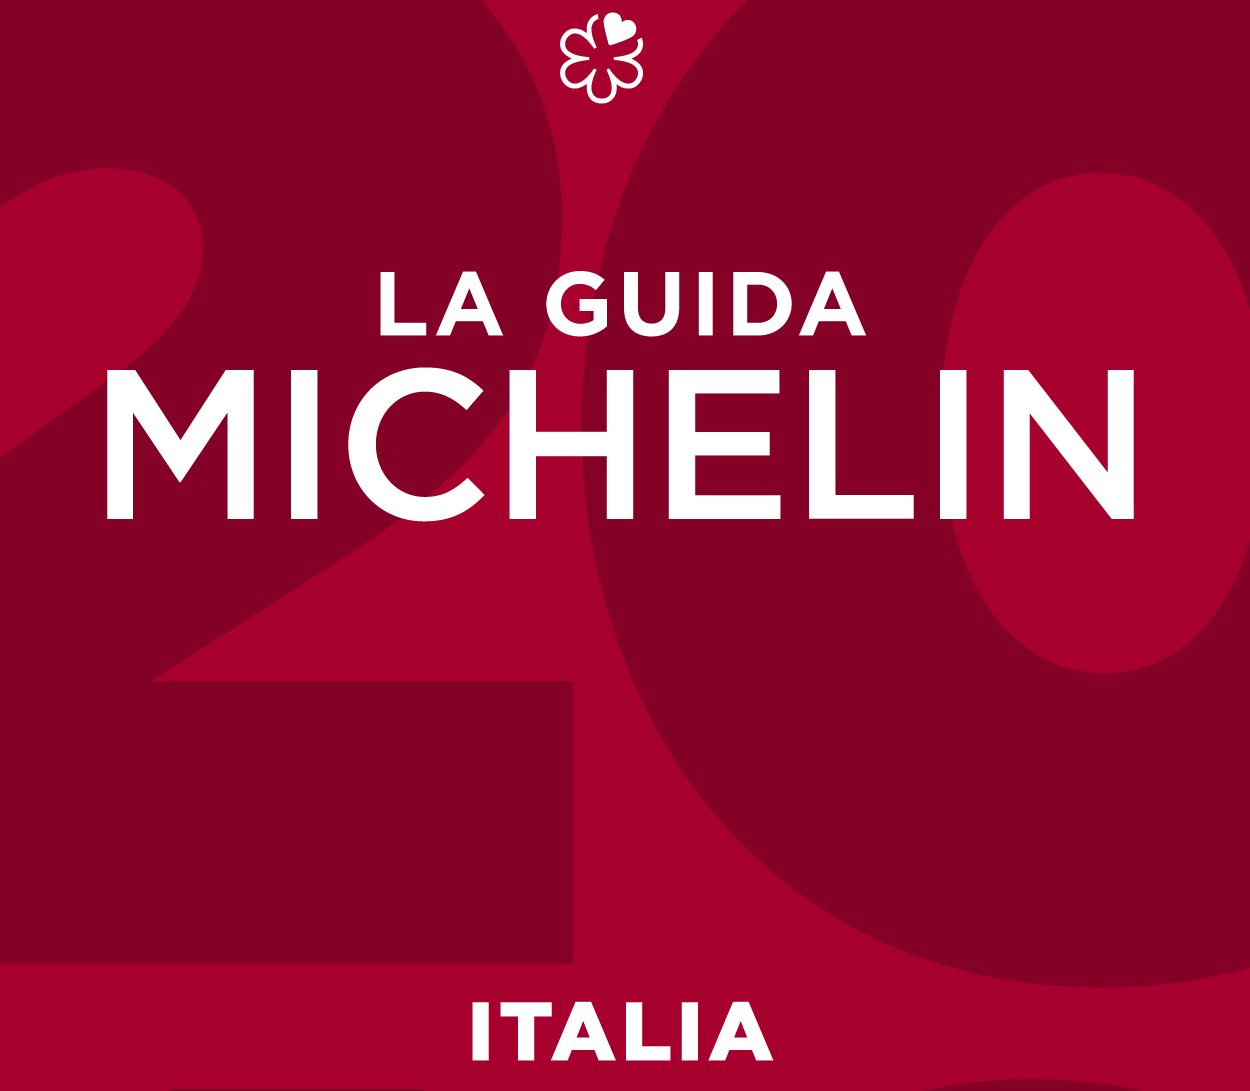 guida michelin 2019 bib gourmand